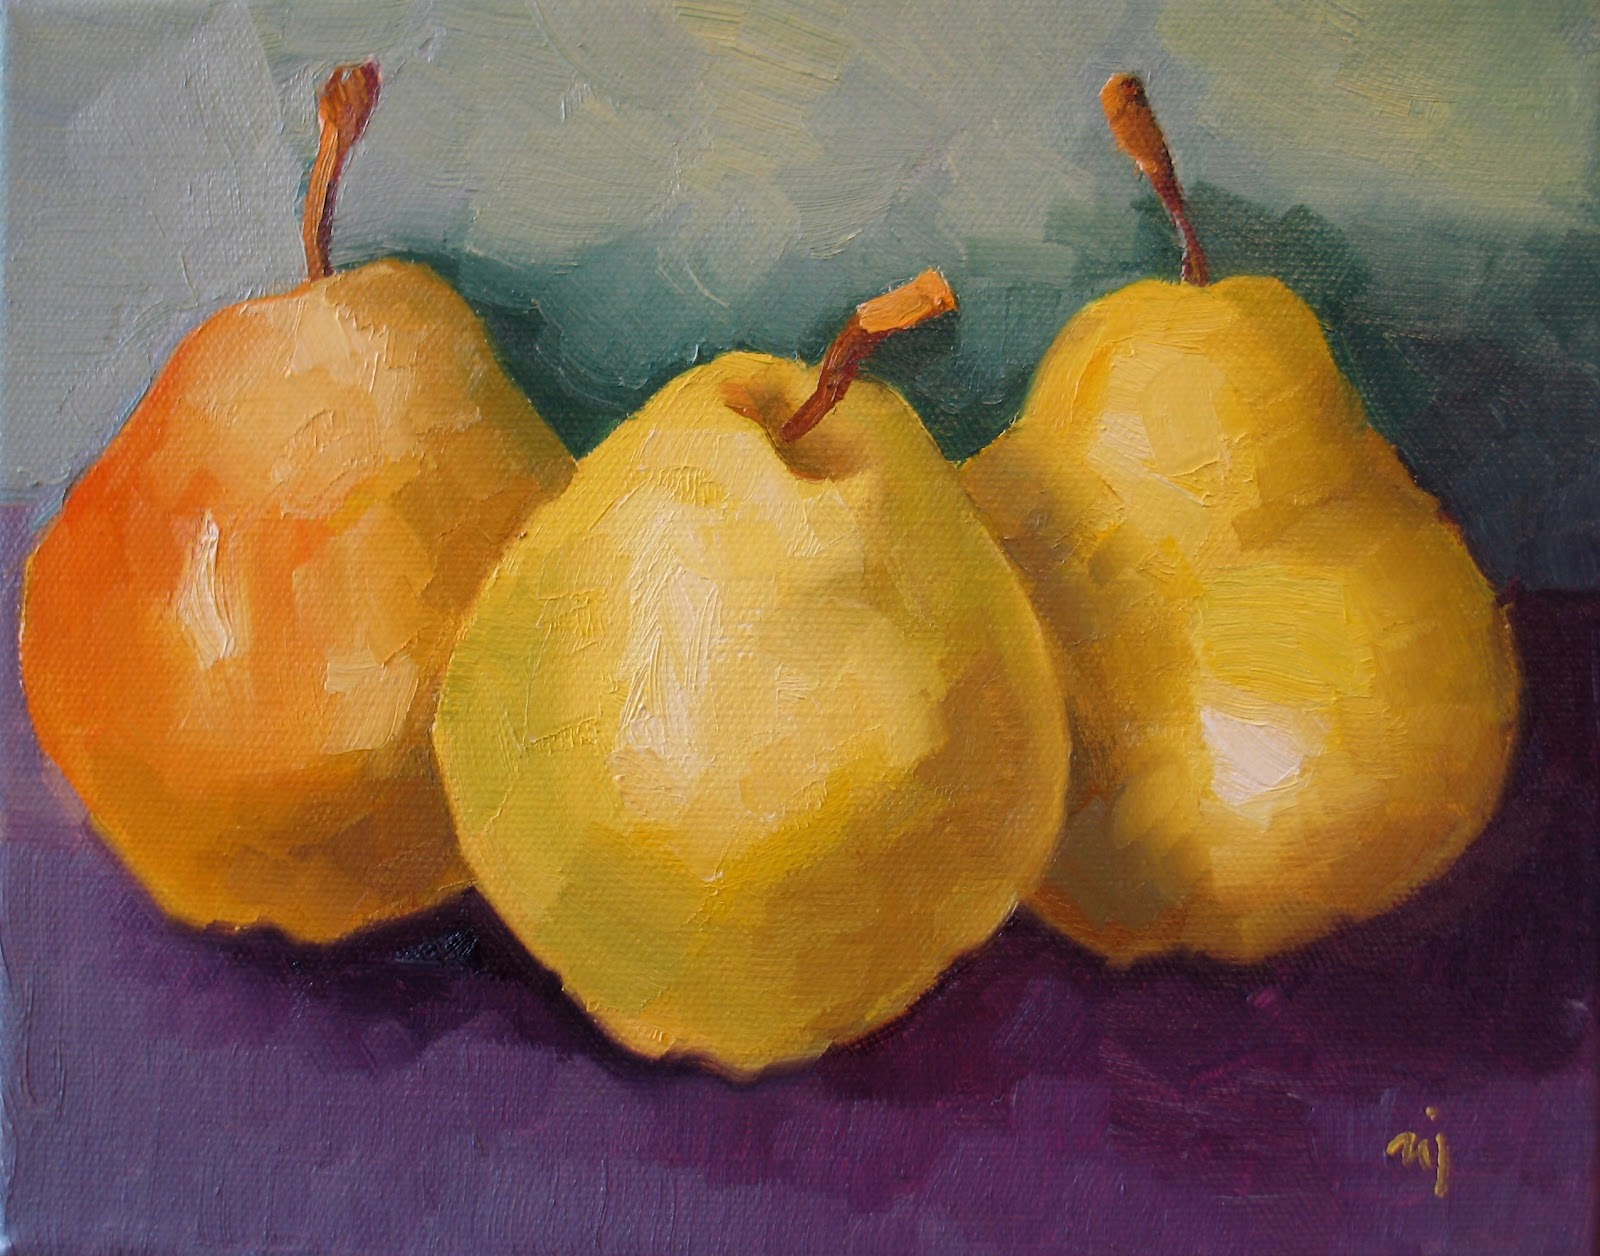 painting pears and paula mandel essay Impressionism painting is characterized by short brushstrokes and quickly-painted surfaces its best-known practitioners include monet and degas impressionism is a style of painting that emerged in the mid to late 1800s and emphasizes an artist's immediate impression of a moment or scene, usually.